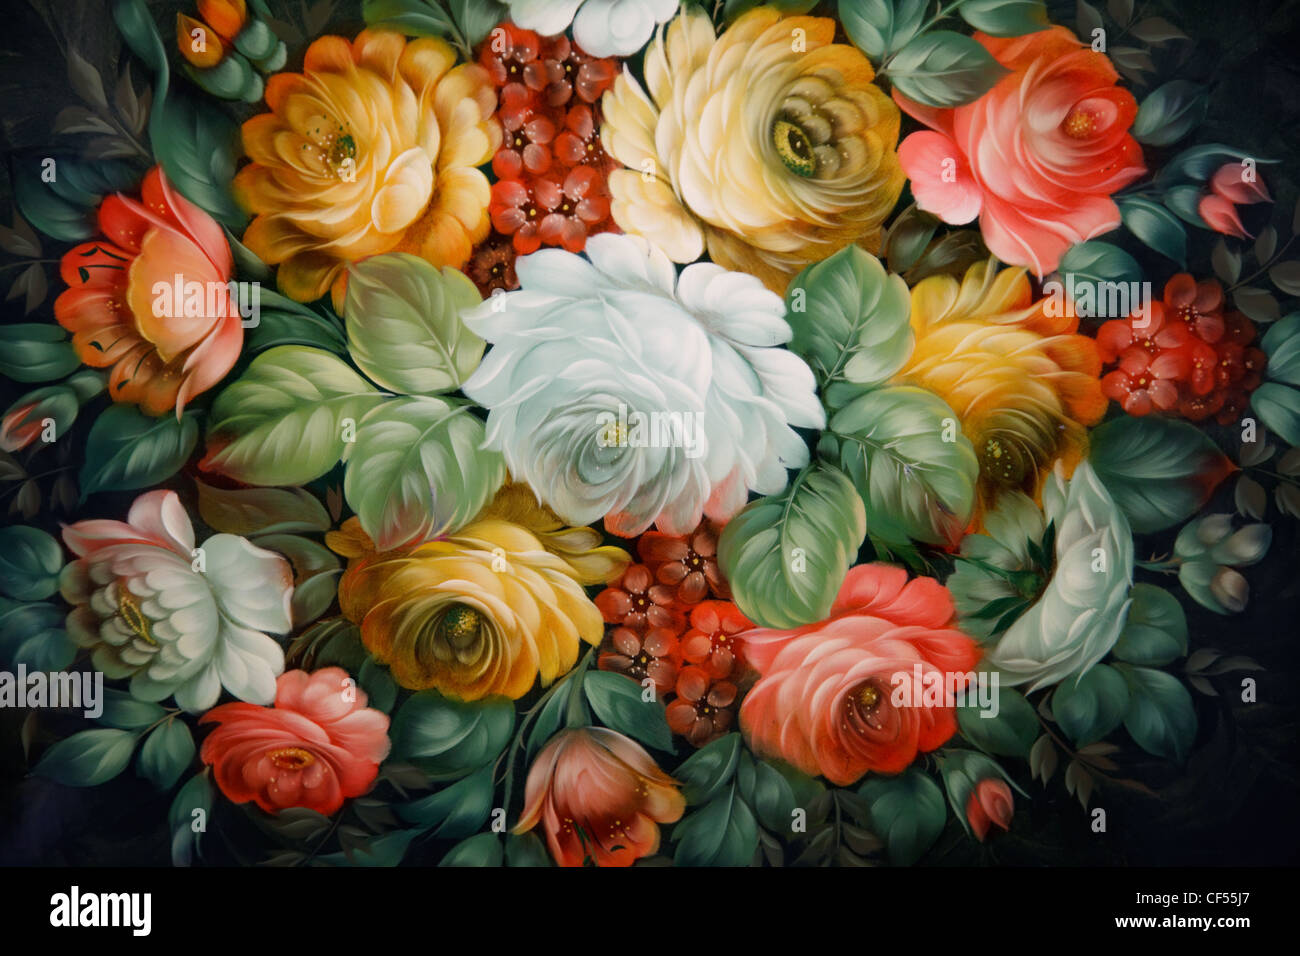 Black tray painted with floral patterns. Russian national crafts. - Stock Image